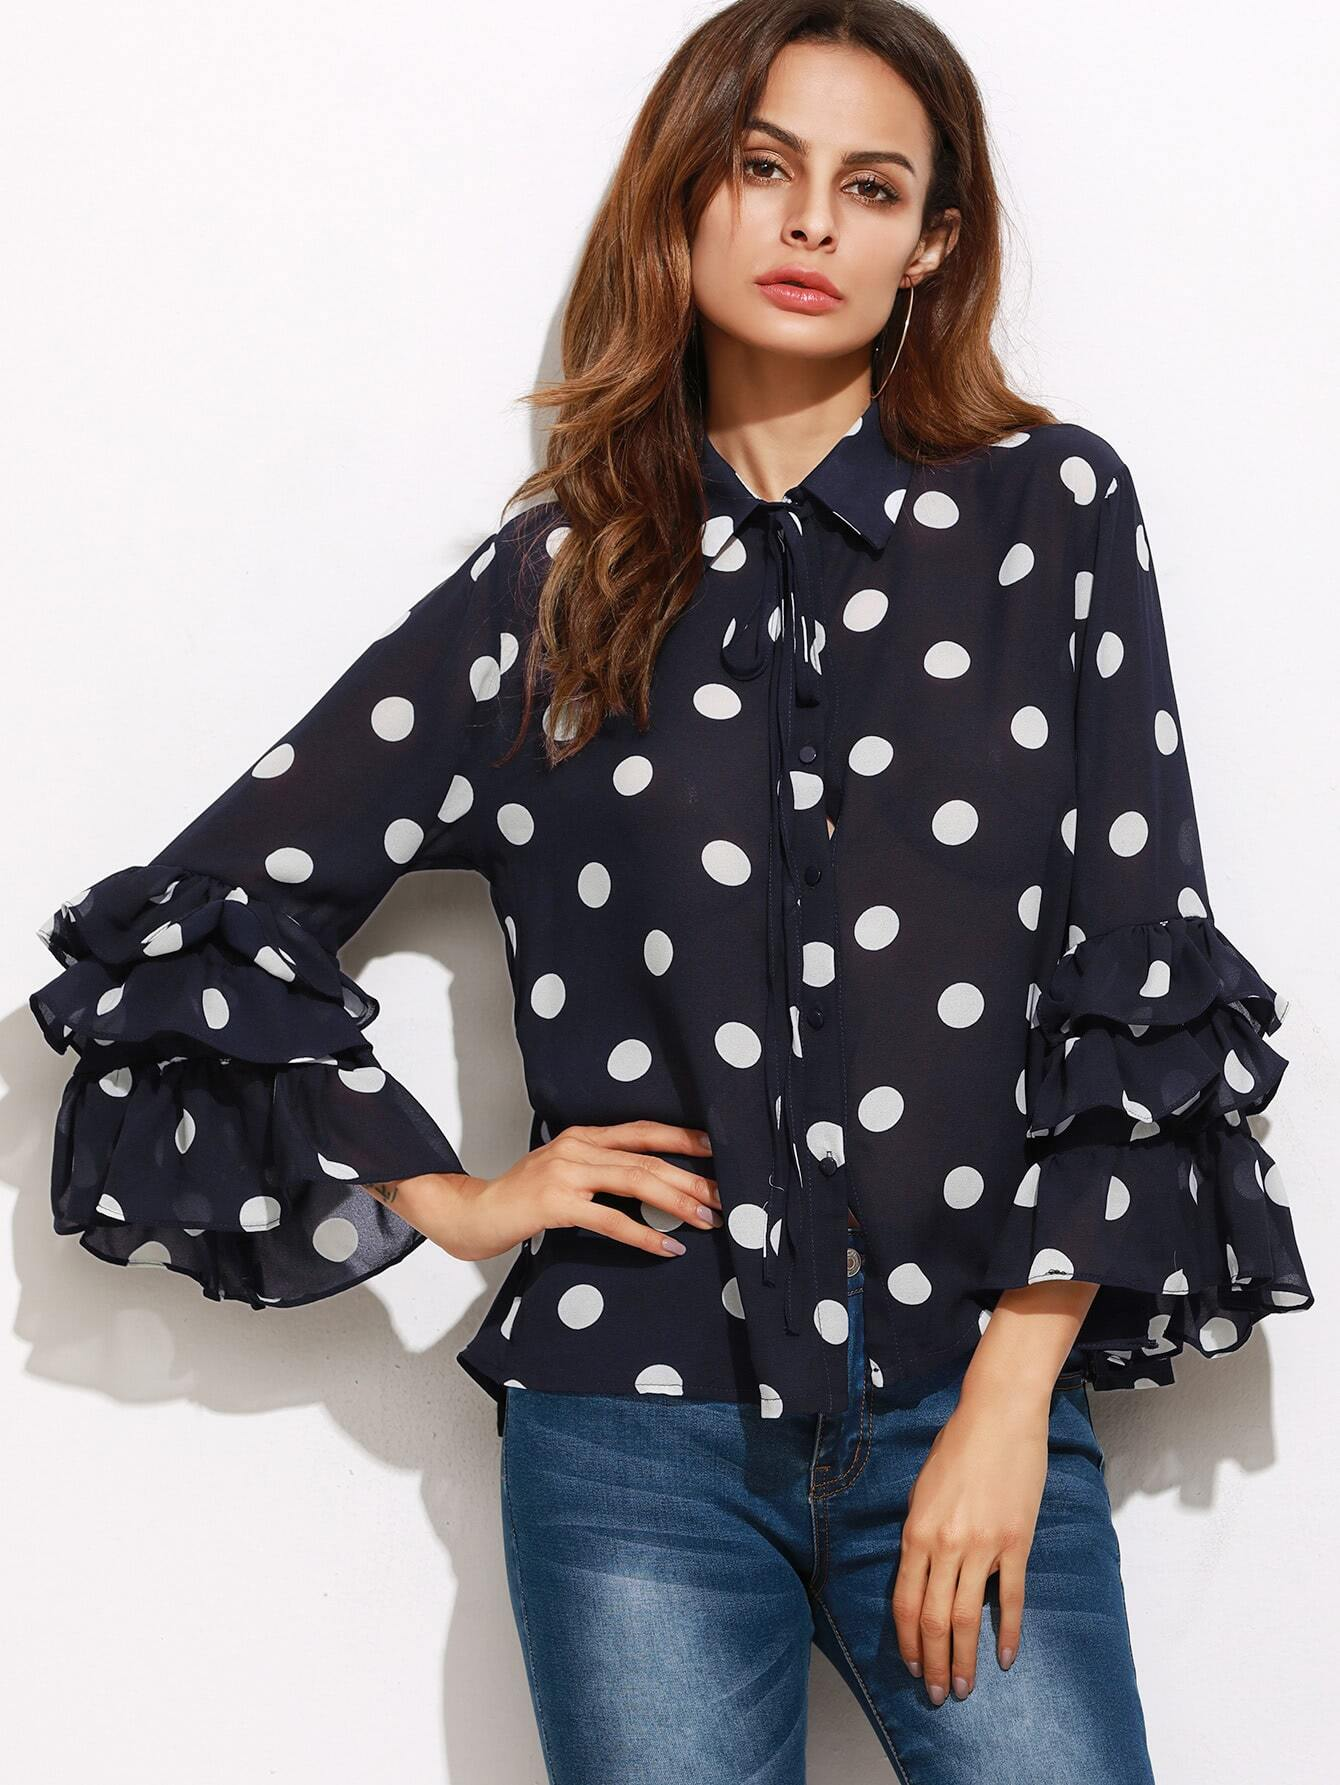 Rock a super stylish look in our Polka Dot Button Down Maternity Blouse. Made in soft woven viscose, the style is ultra-light and generously cut for a relaxed, loose fit before, during and after pregnancy.